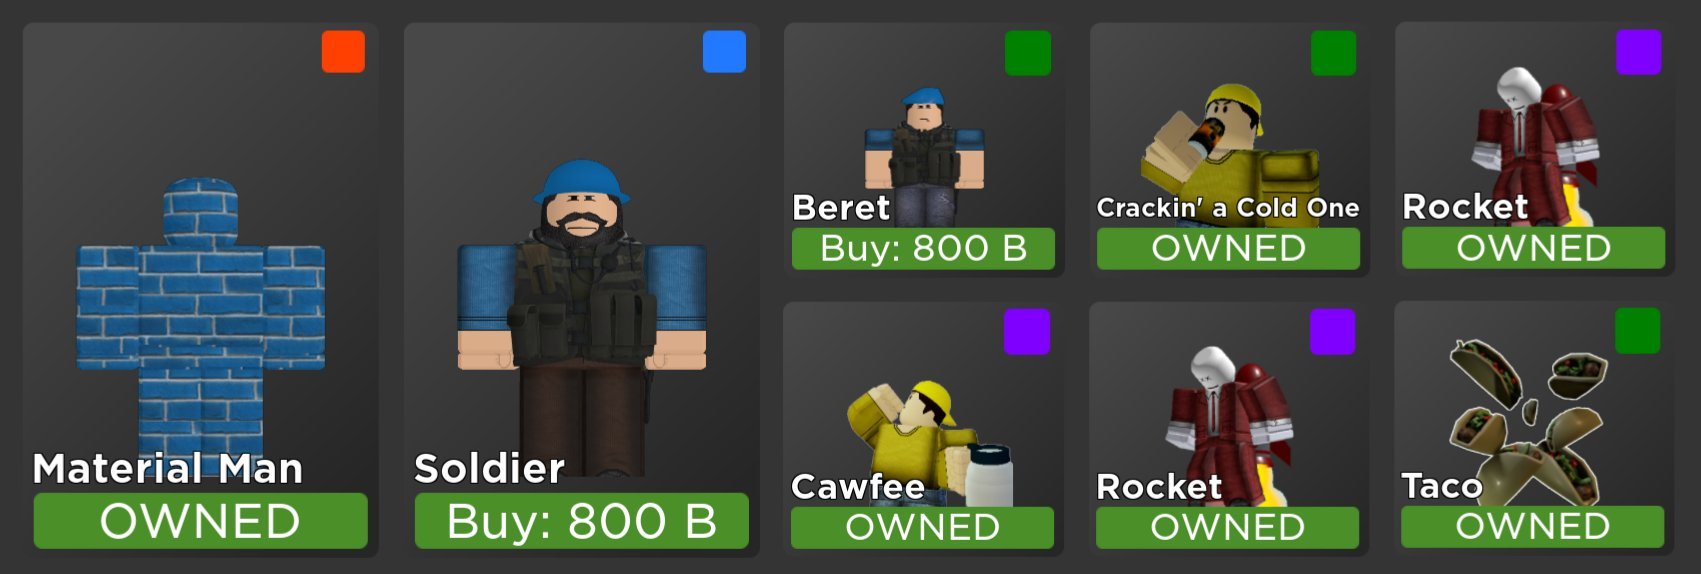 arsenal daily shop on twitter roblox